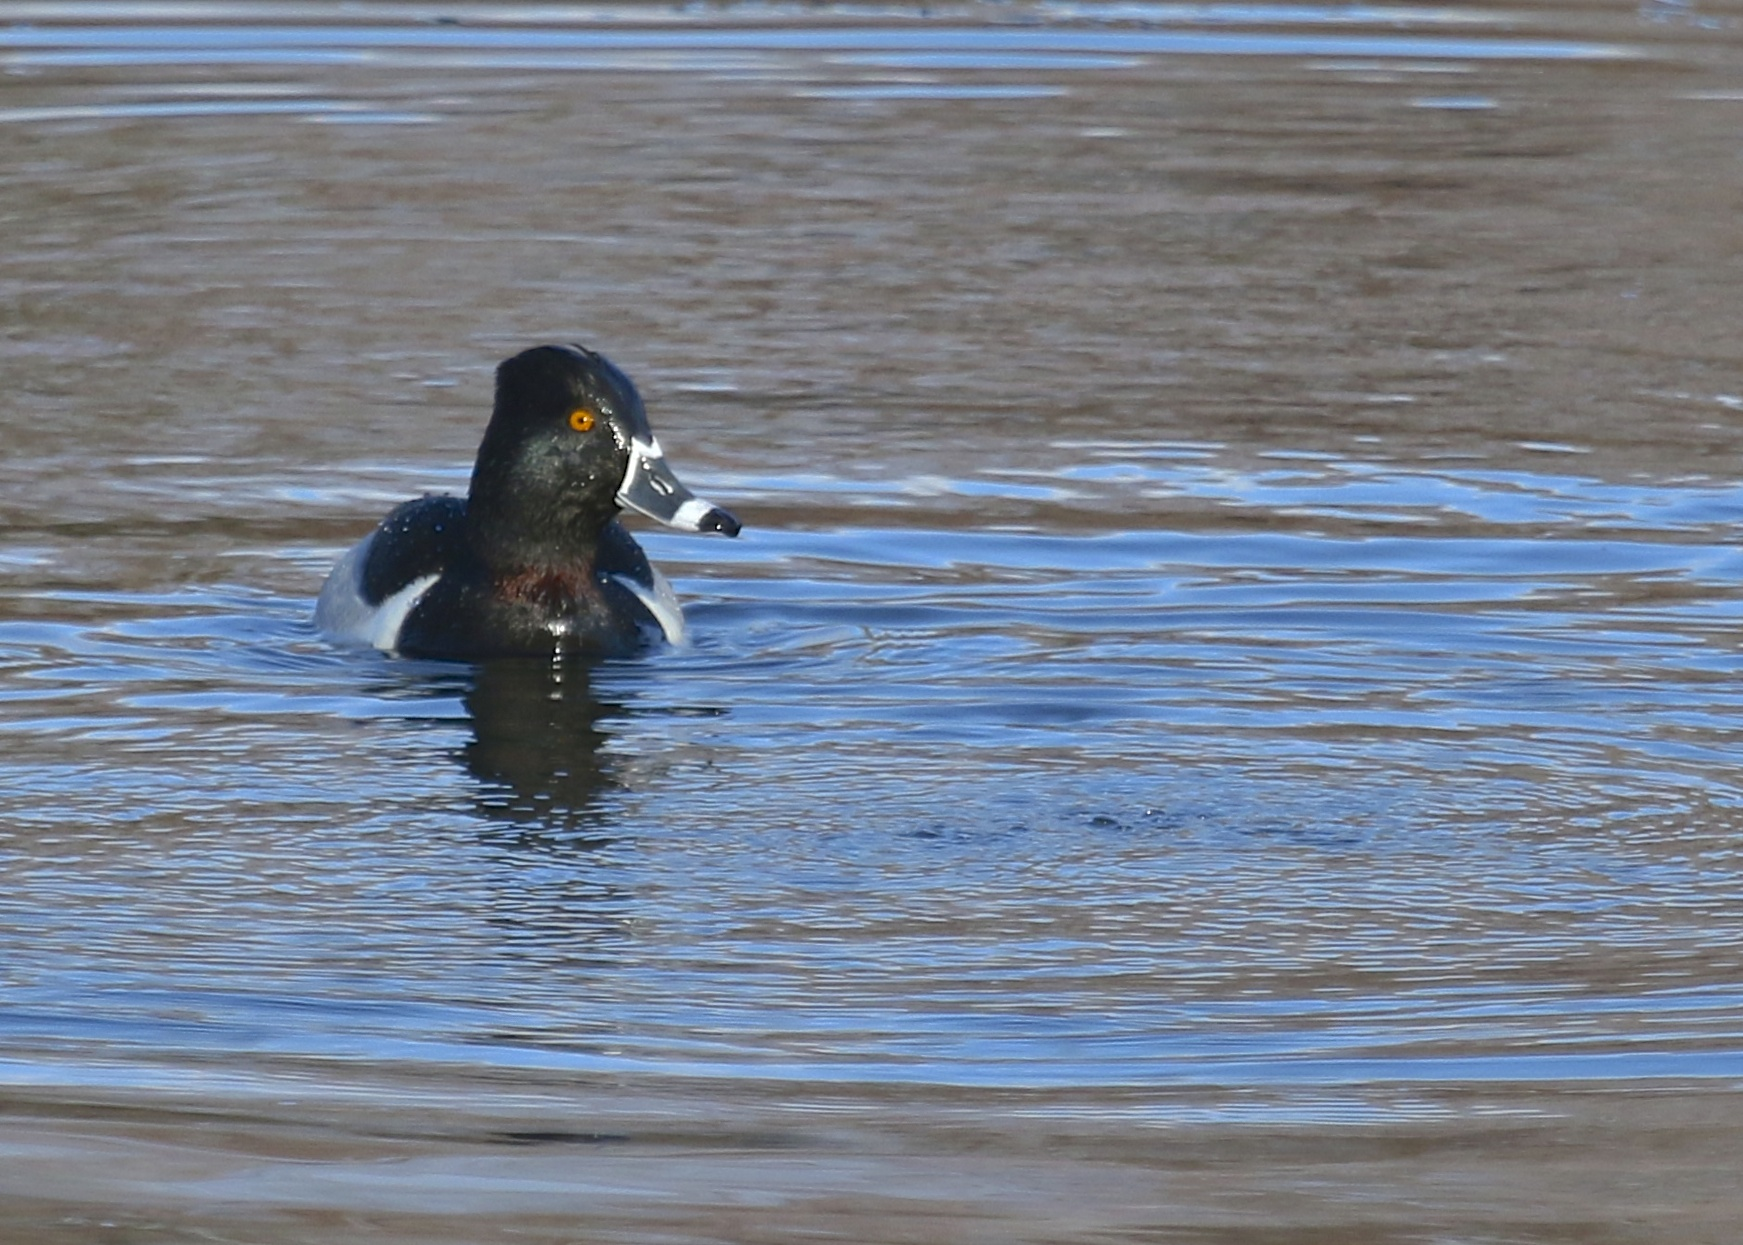 At Orange & Rockland lake there were three Ring-necked Ducks that were very accommodating, 4/5/14.